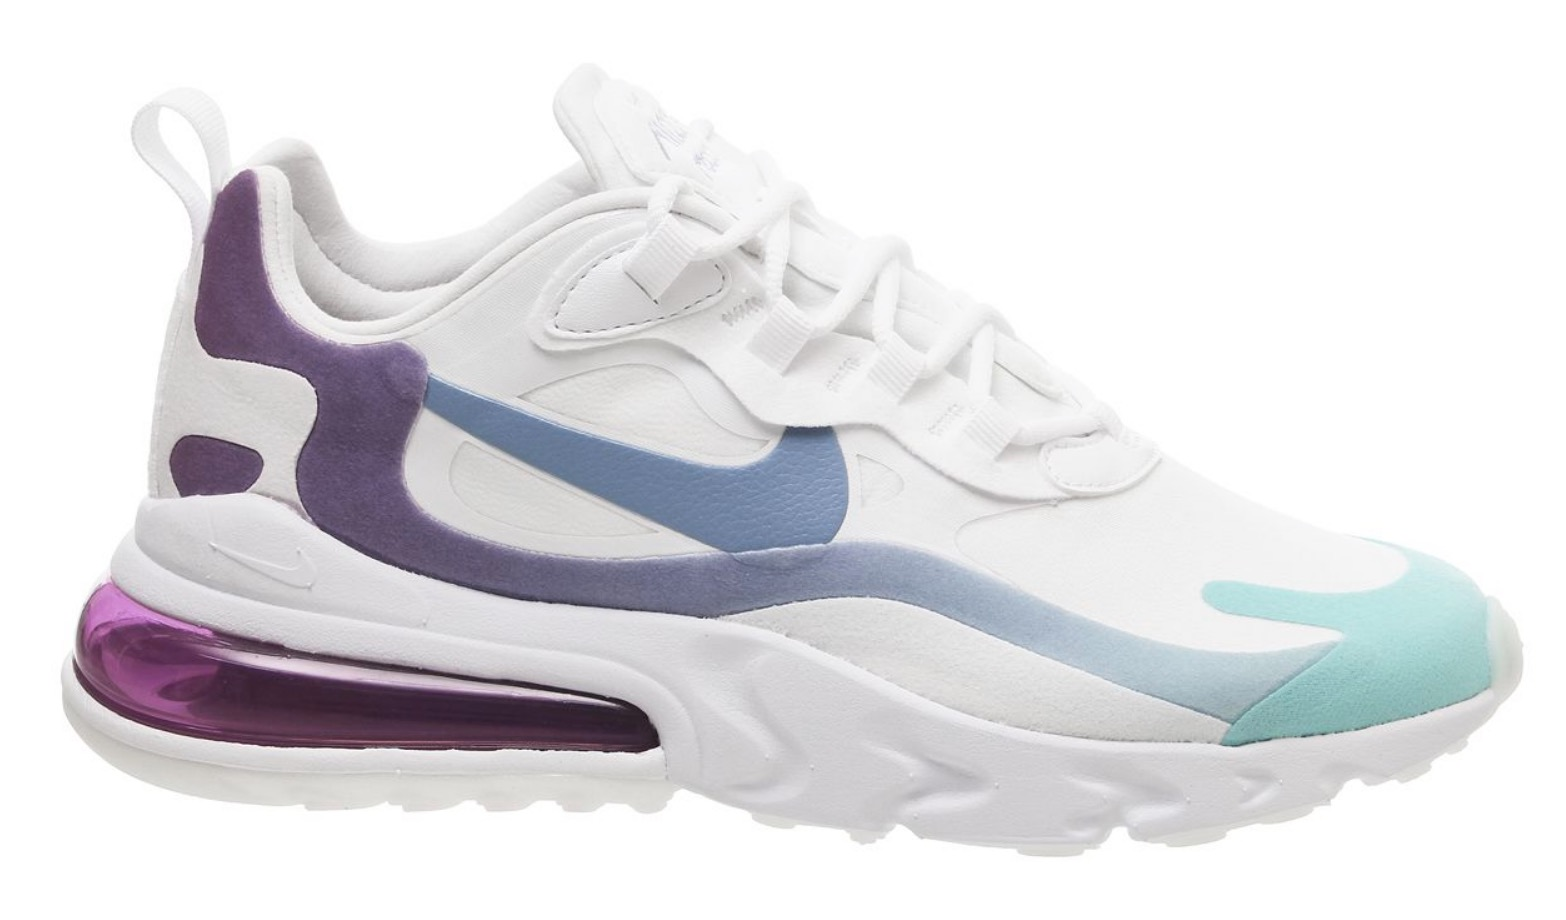 Nike Air Max 270 React Gradient